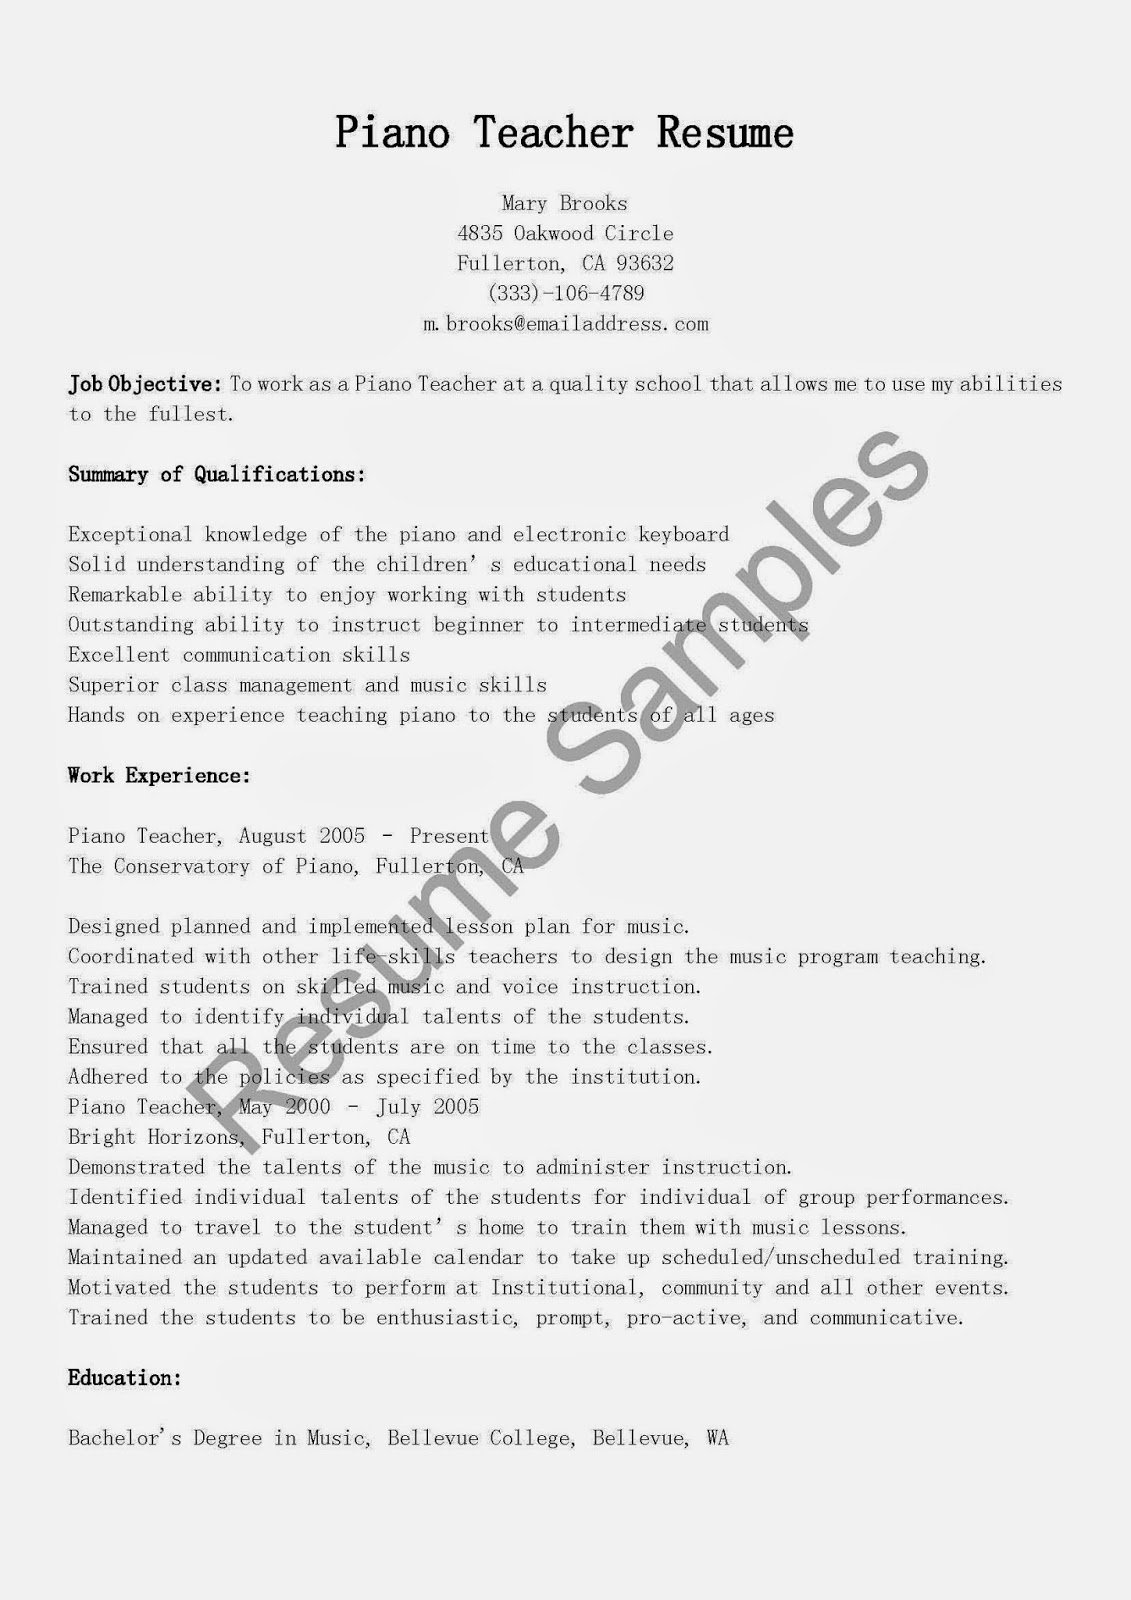 Music Teacher Resume Sample Inspirational Resume Samples Piano Teacher Resume Sample